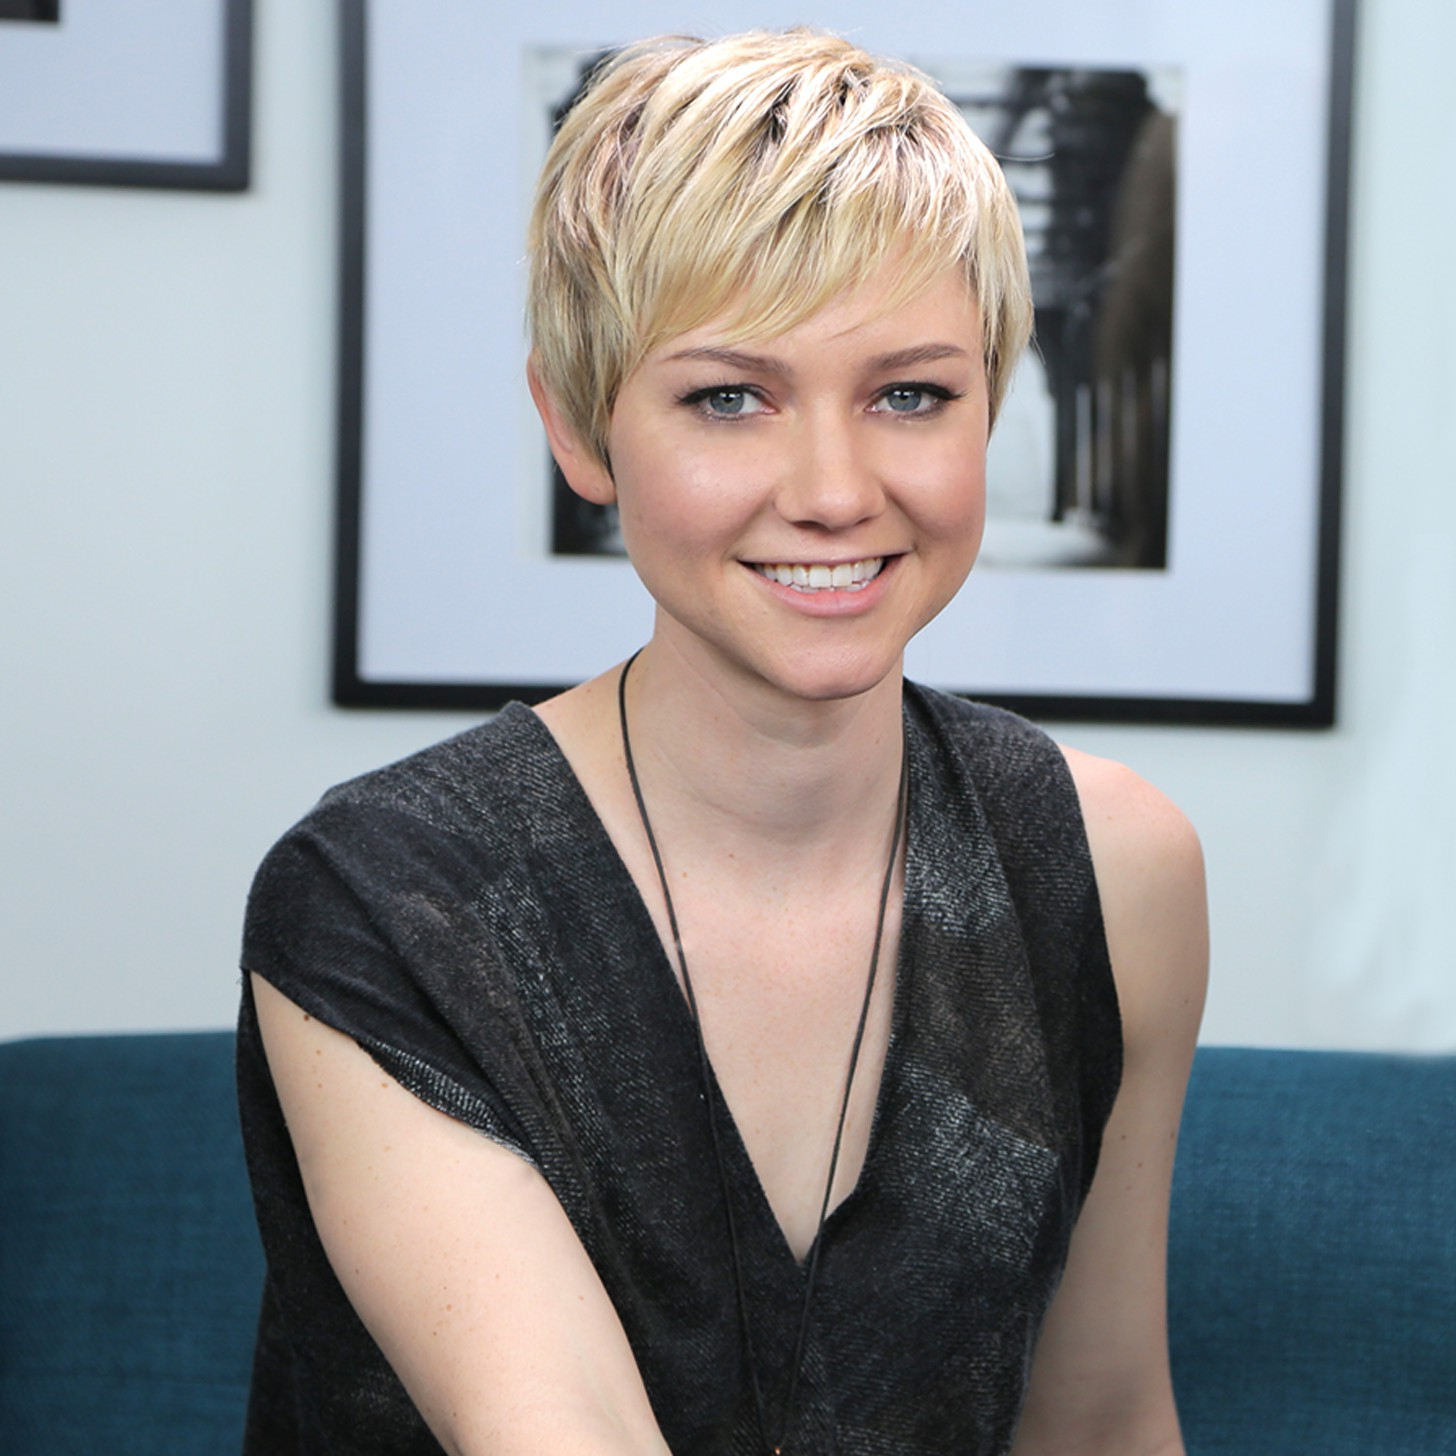 Spunky Haircuts New Spunky Short Haircuts Hairstyle Ideas In 2018 Pertaining To Spunky Short Hairstyles (View 13 of 25)